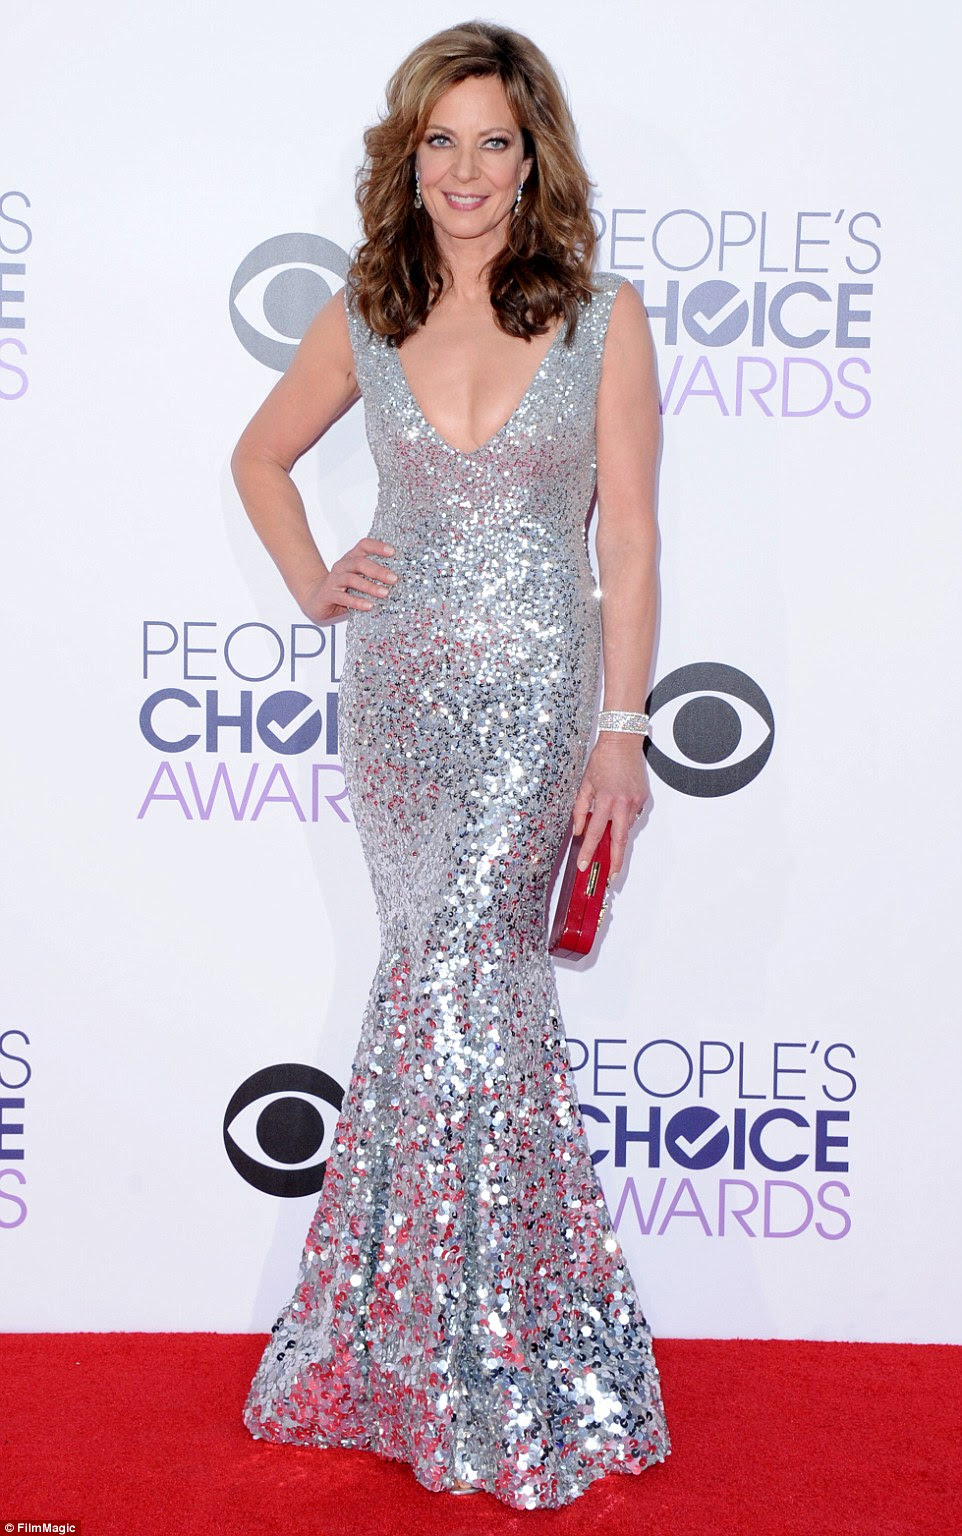 That's one way to stand out in the crowd: Janney took a daring turn in a low-cut silver sequined floor-length gown. The brunette beauty also had 1980s big hair that looked like something Cindy Crawford used to pull off